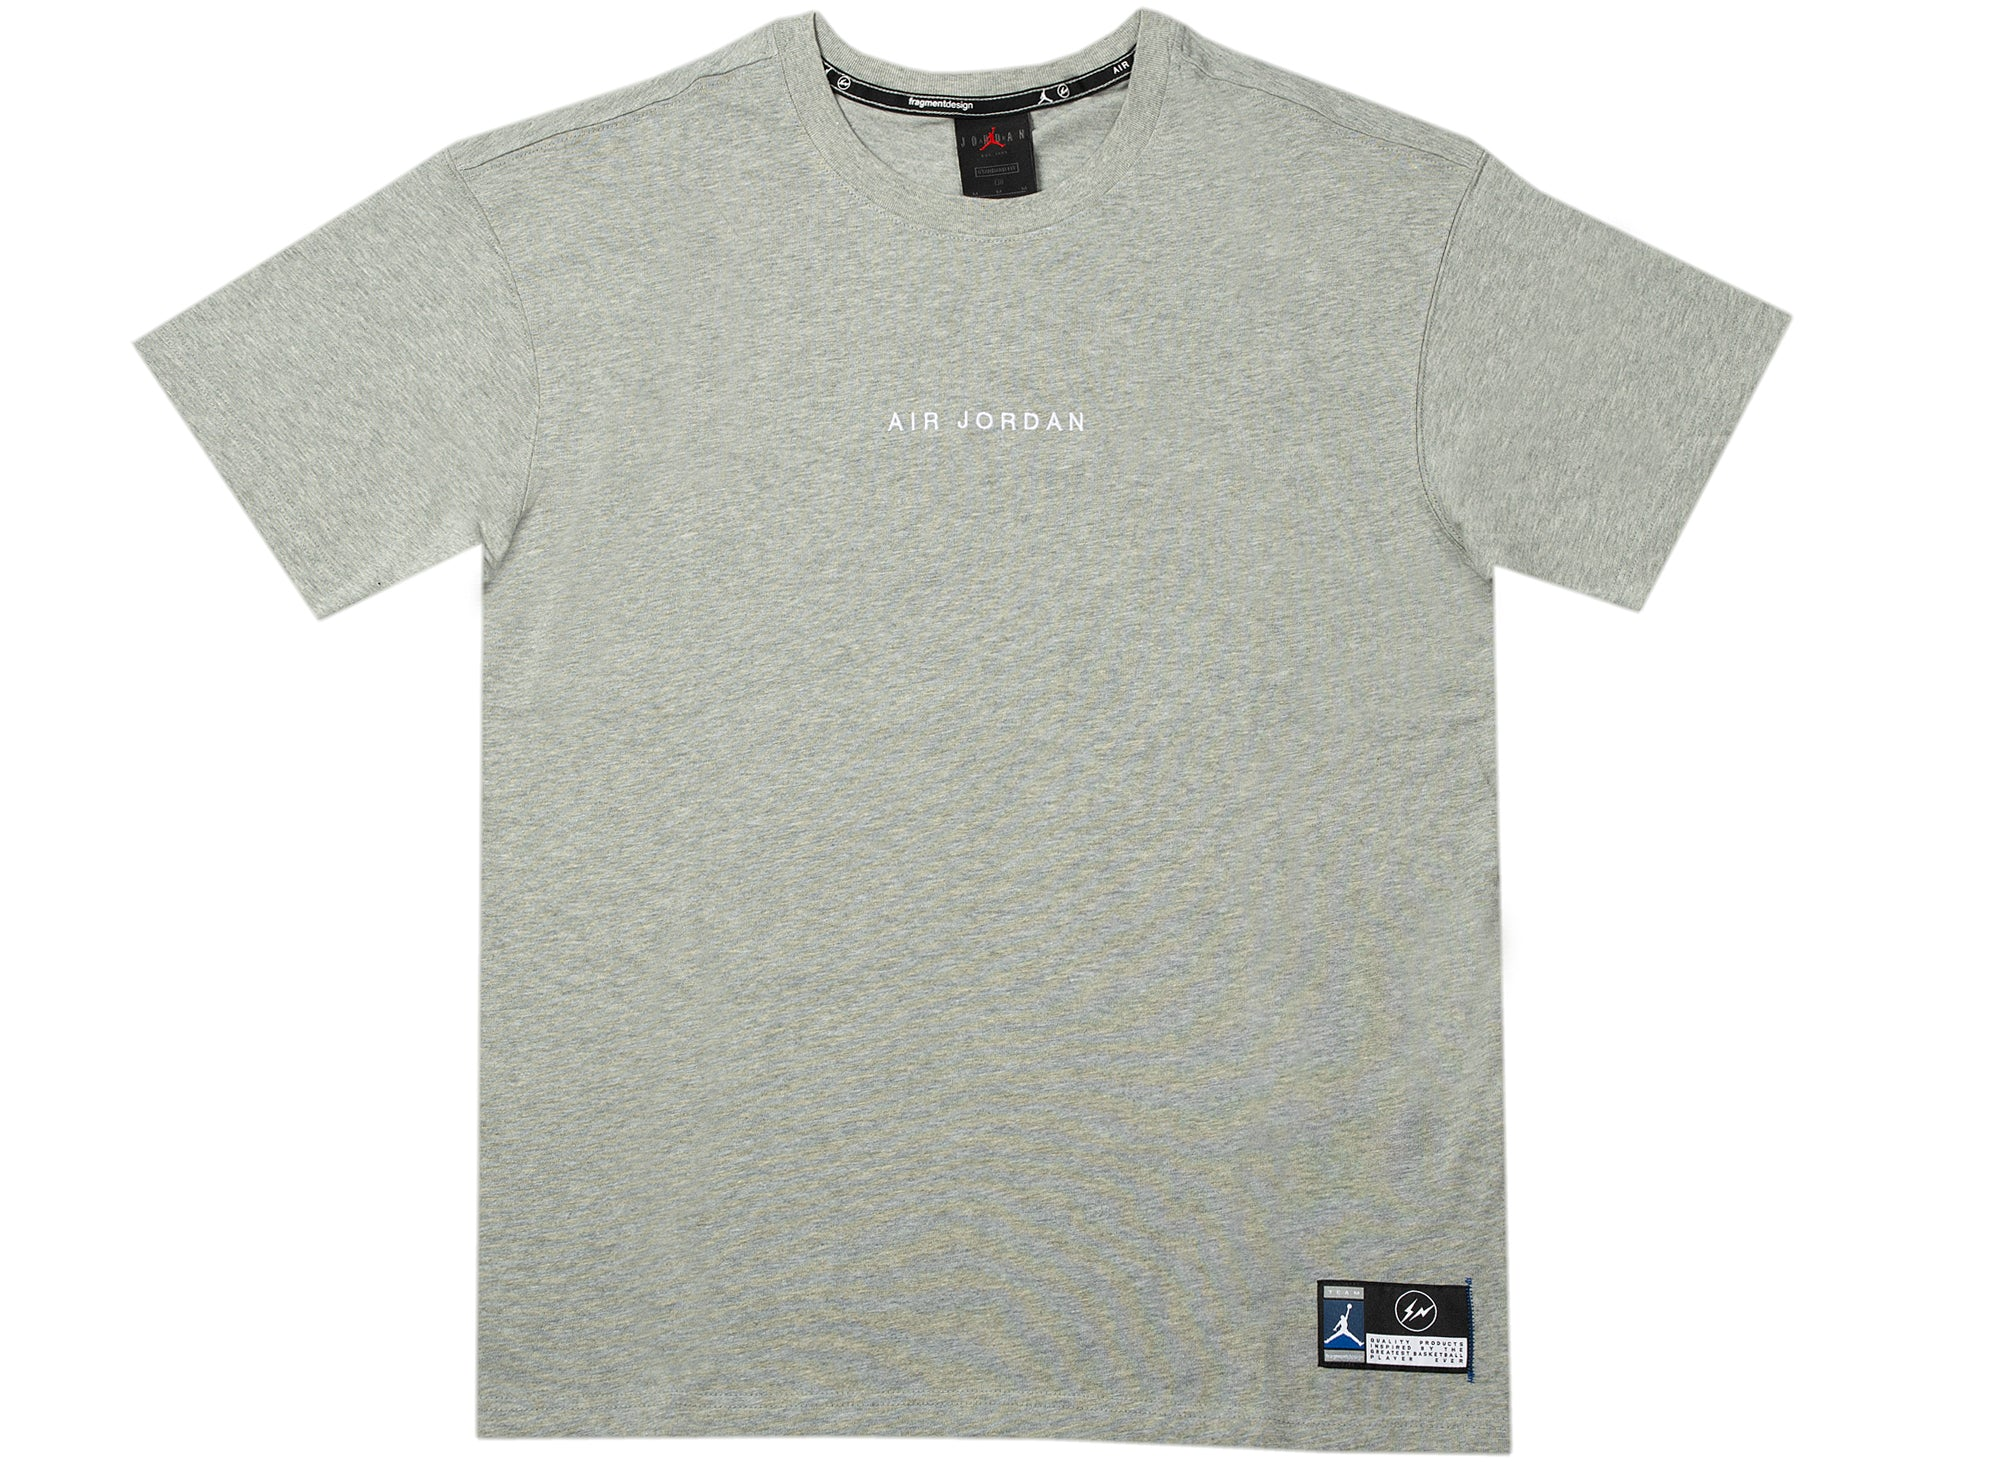 Jordan x Fragment Lifestyle Top in Grey xld